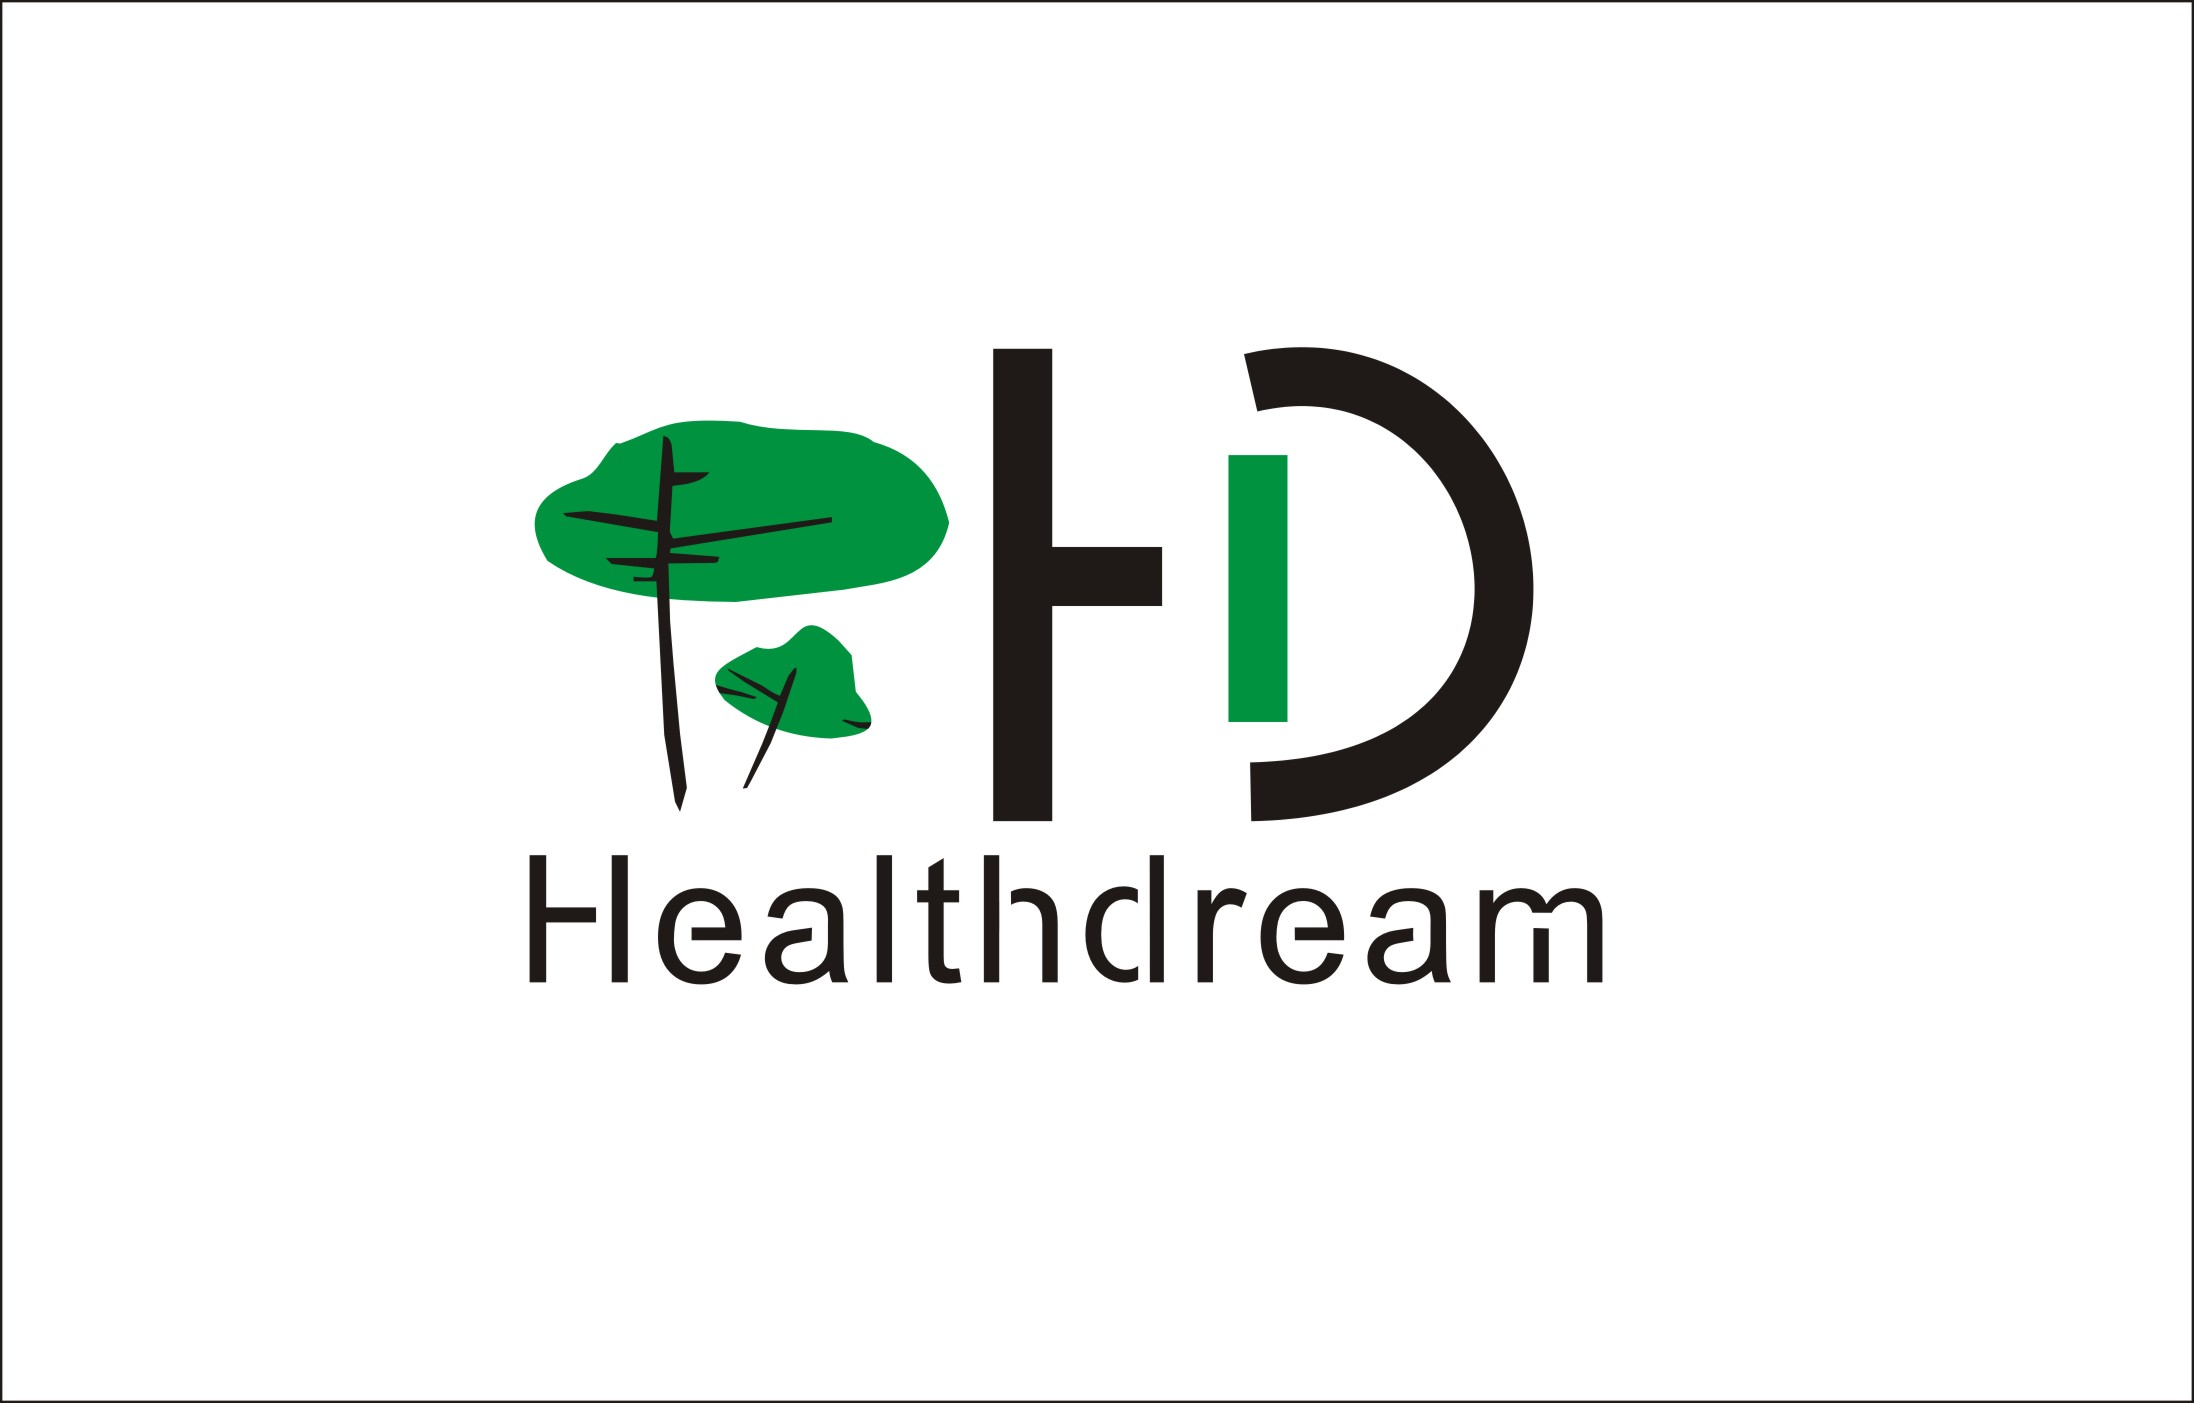 Wuhan Healthdream Biological Technology Co., Ltd. logo